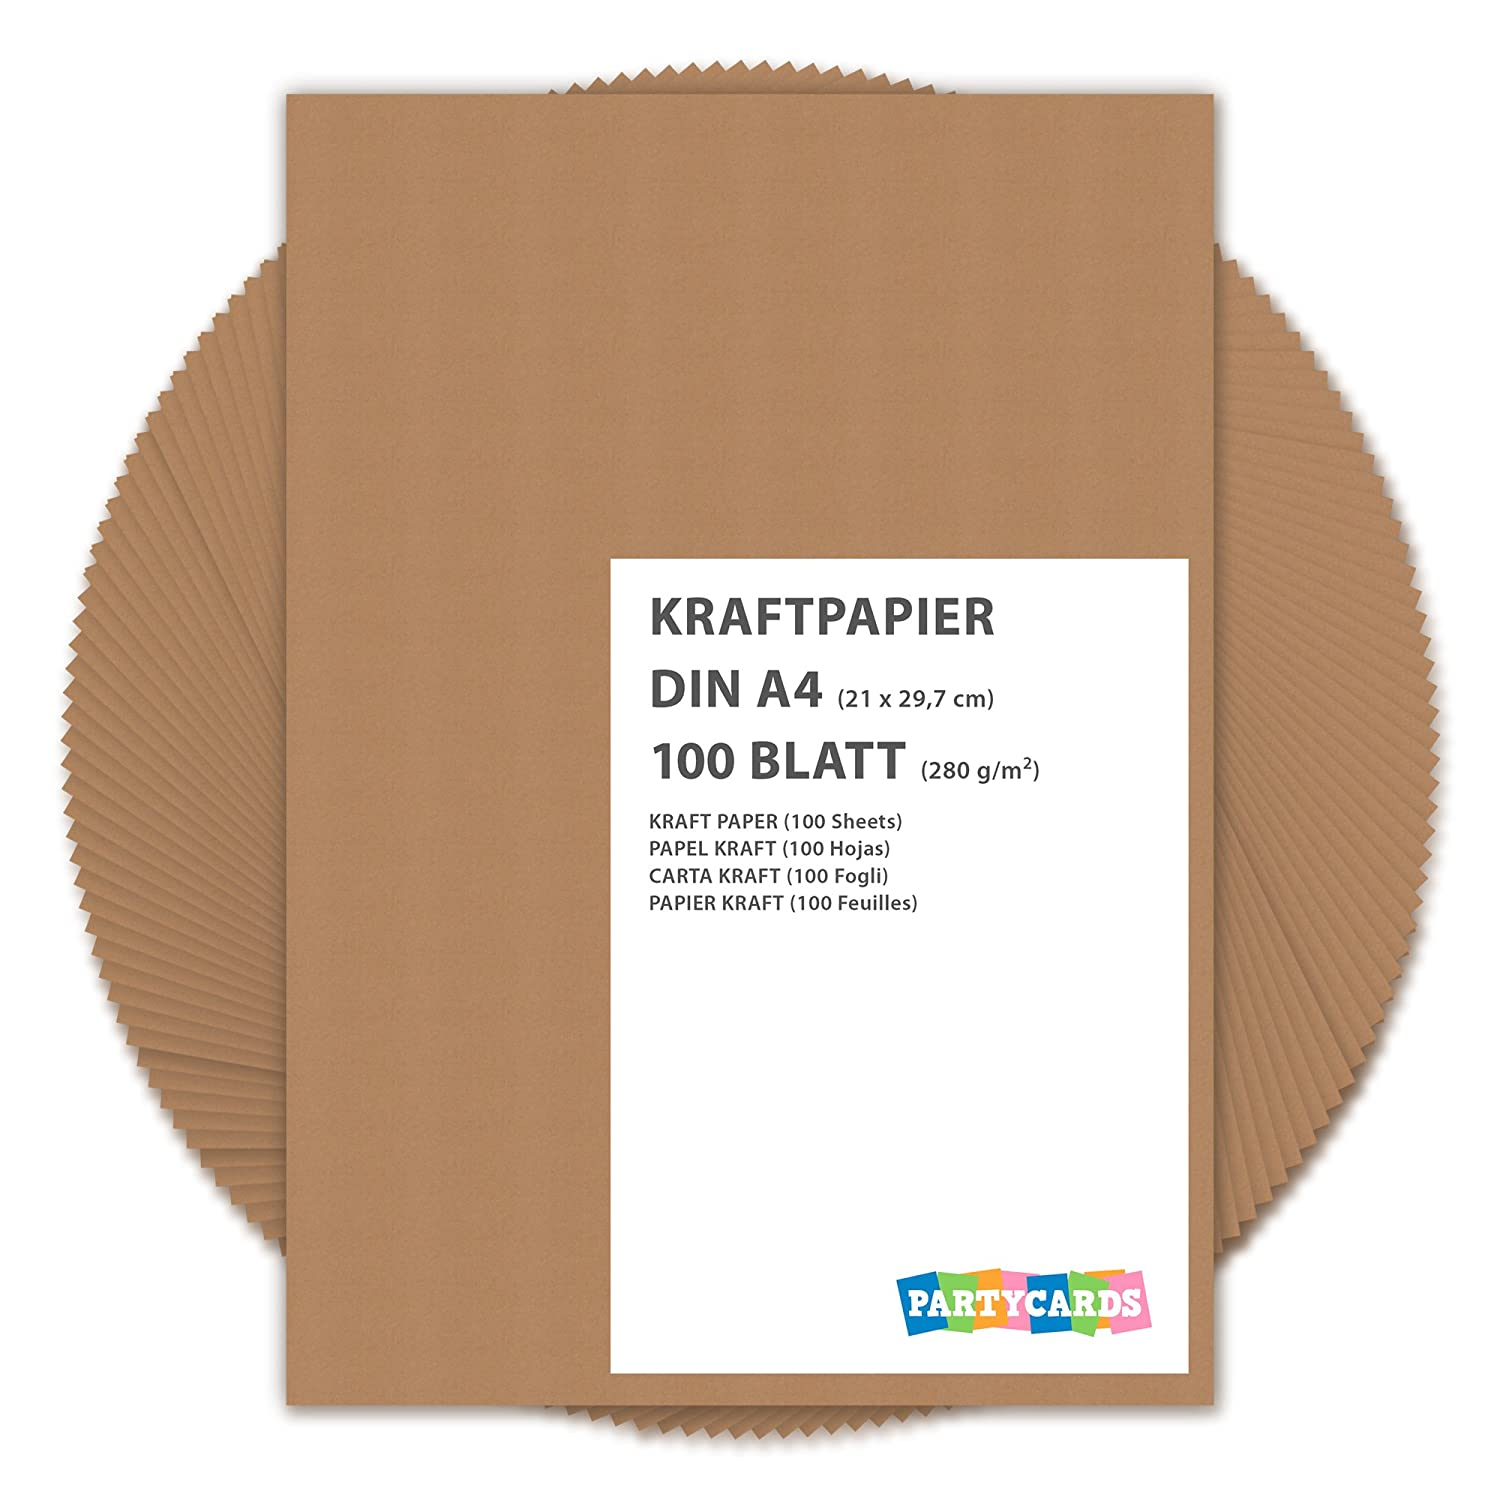 100 Sheets of Kraft Paper / Card A4 280g/m² Quality Cardboard Ideal for Craft and DIY / Brown Partycards KP-100/2017